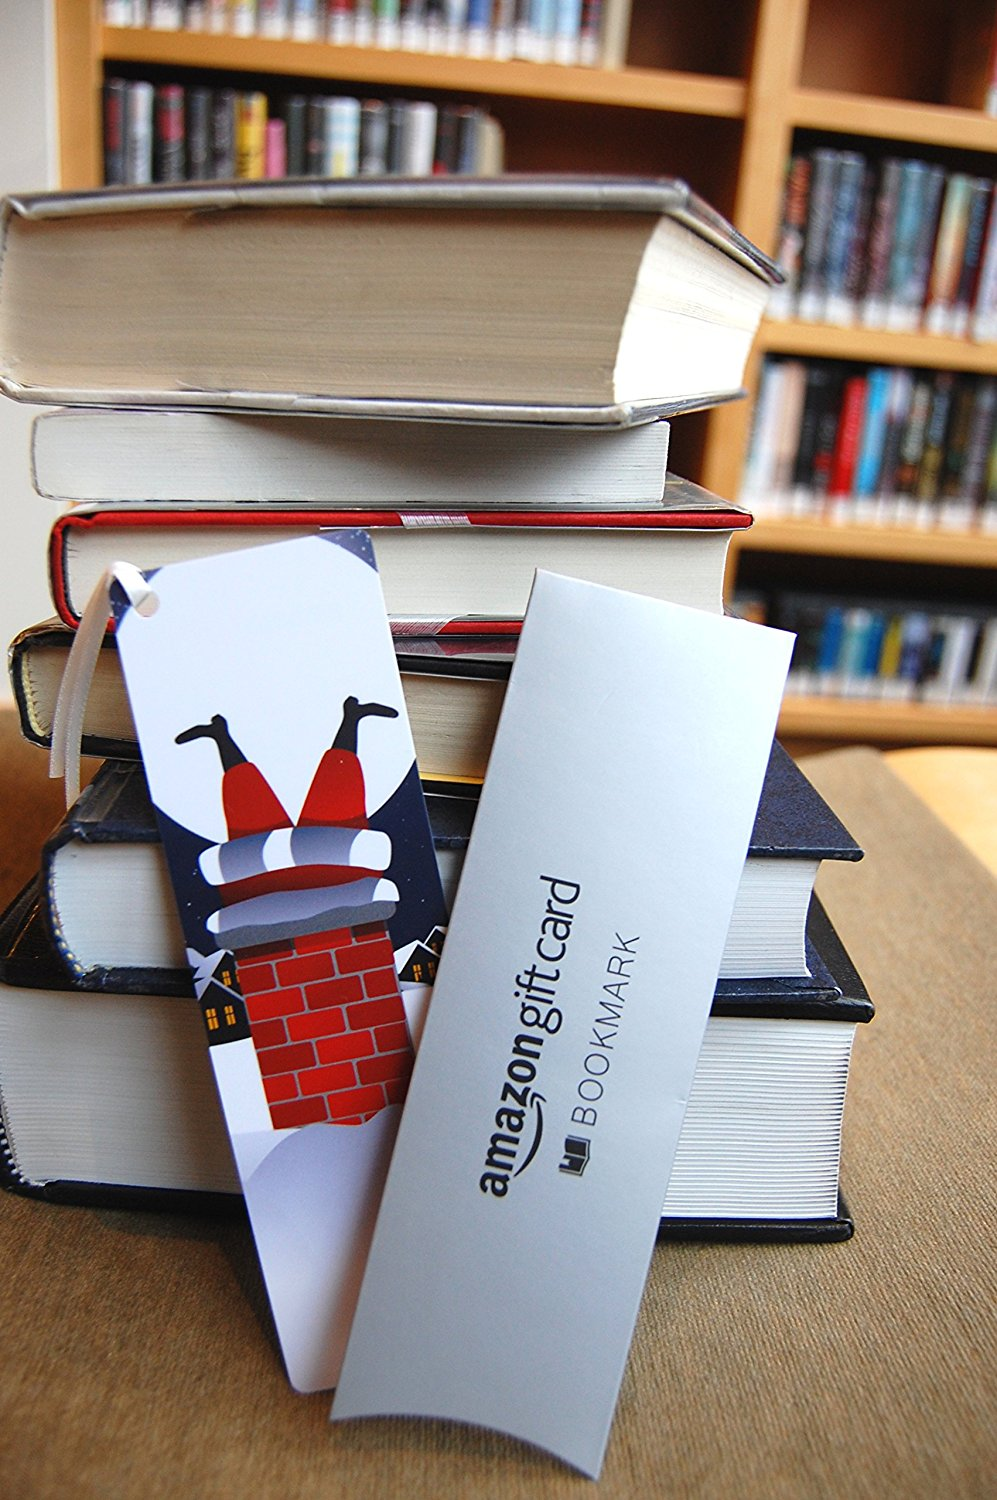 How to make gift cards more special: Order an Amazon gift card as a bookmark!